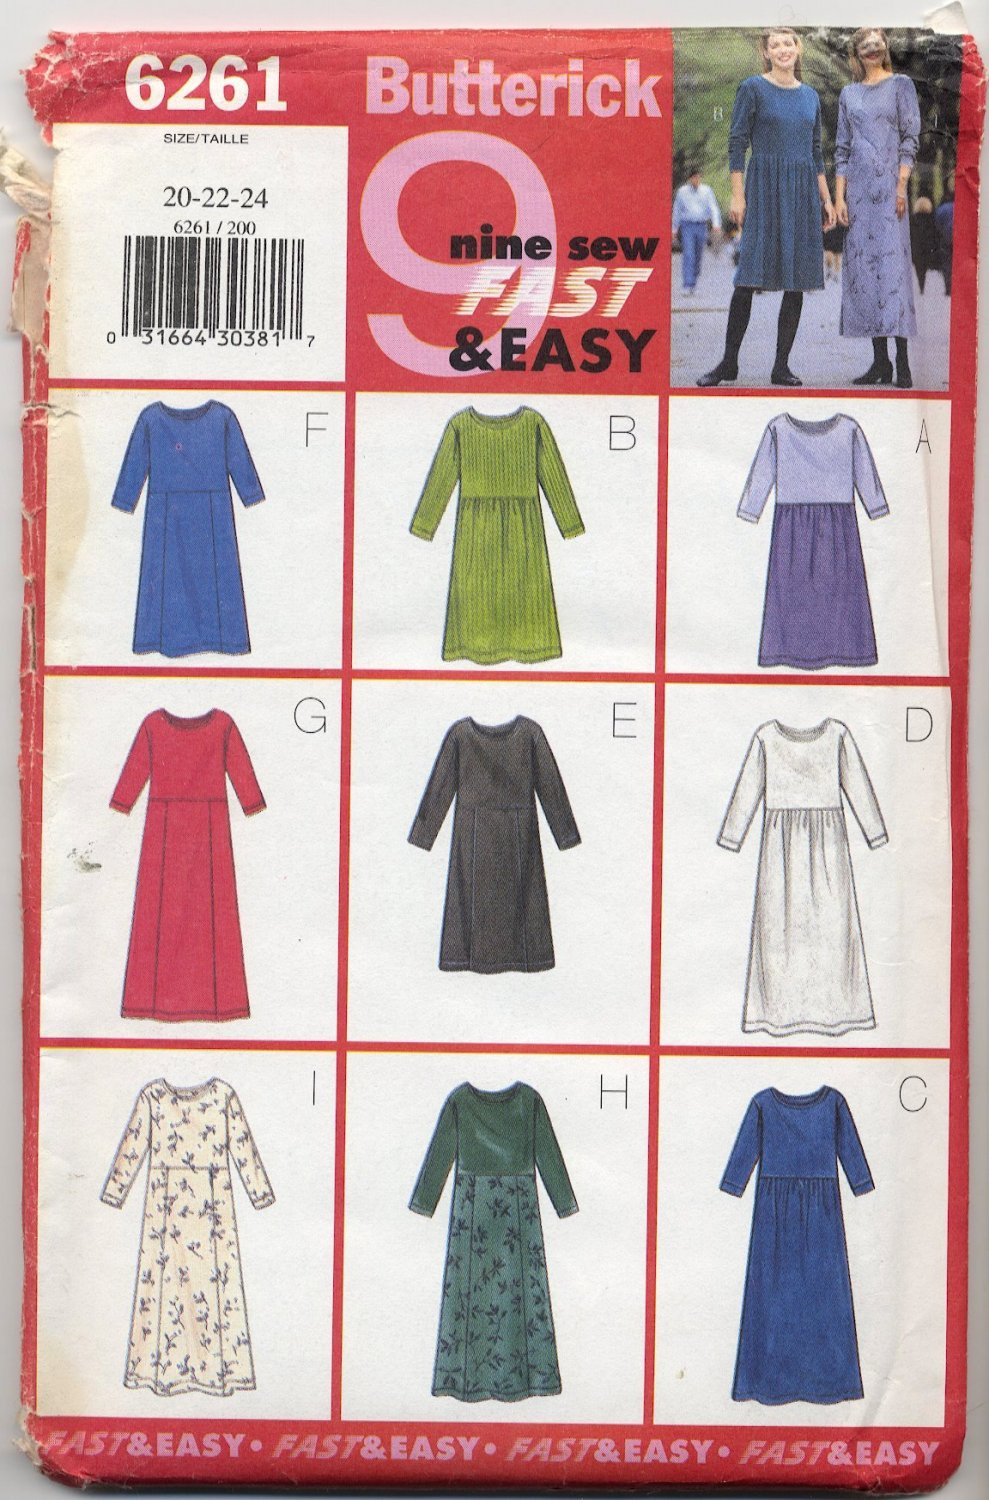 Butterick 6261 Dresses - Very Easy Sewing Pattern Misses' 20 22 24 Cozy Casual Comfort